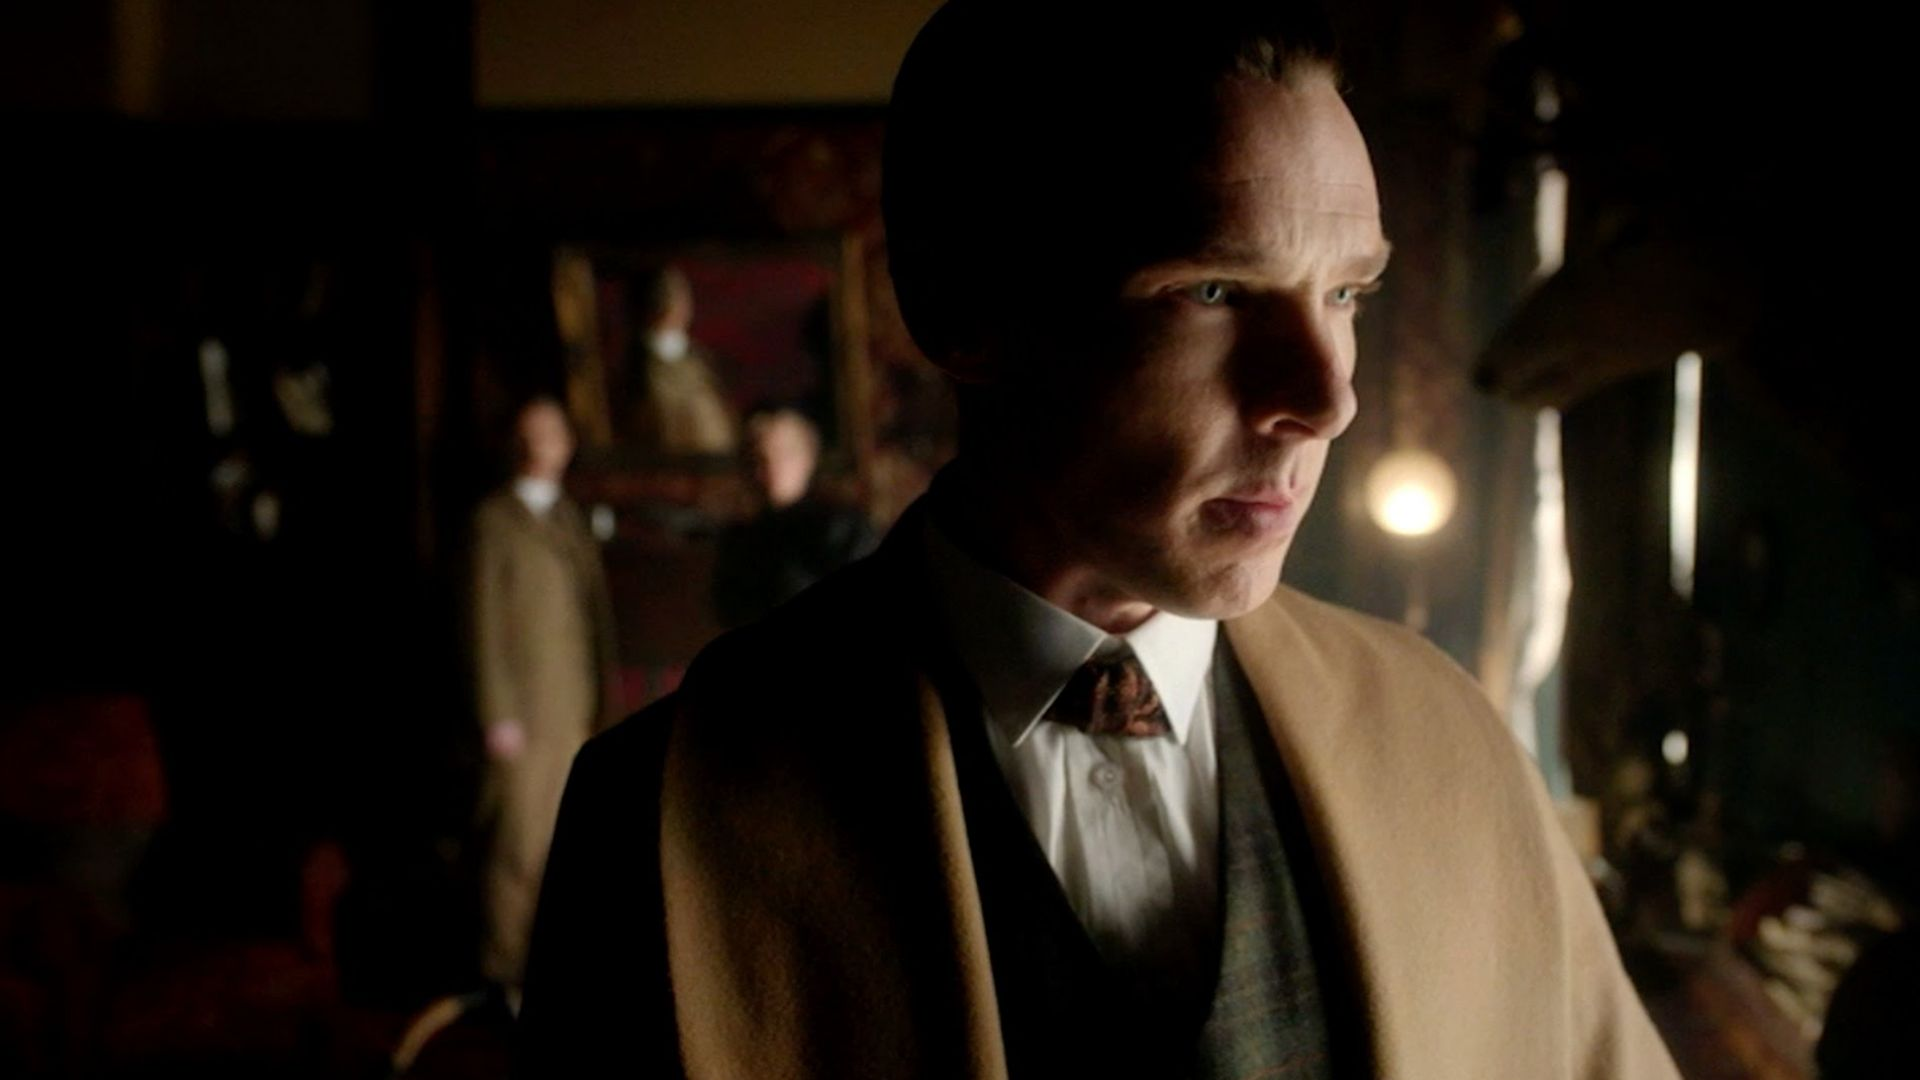 Sherlock Special: Official TV Trailer - BBC One